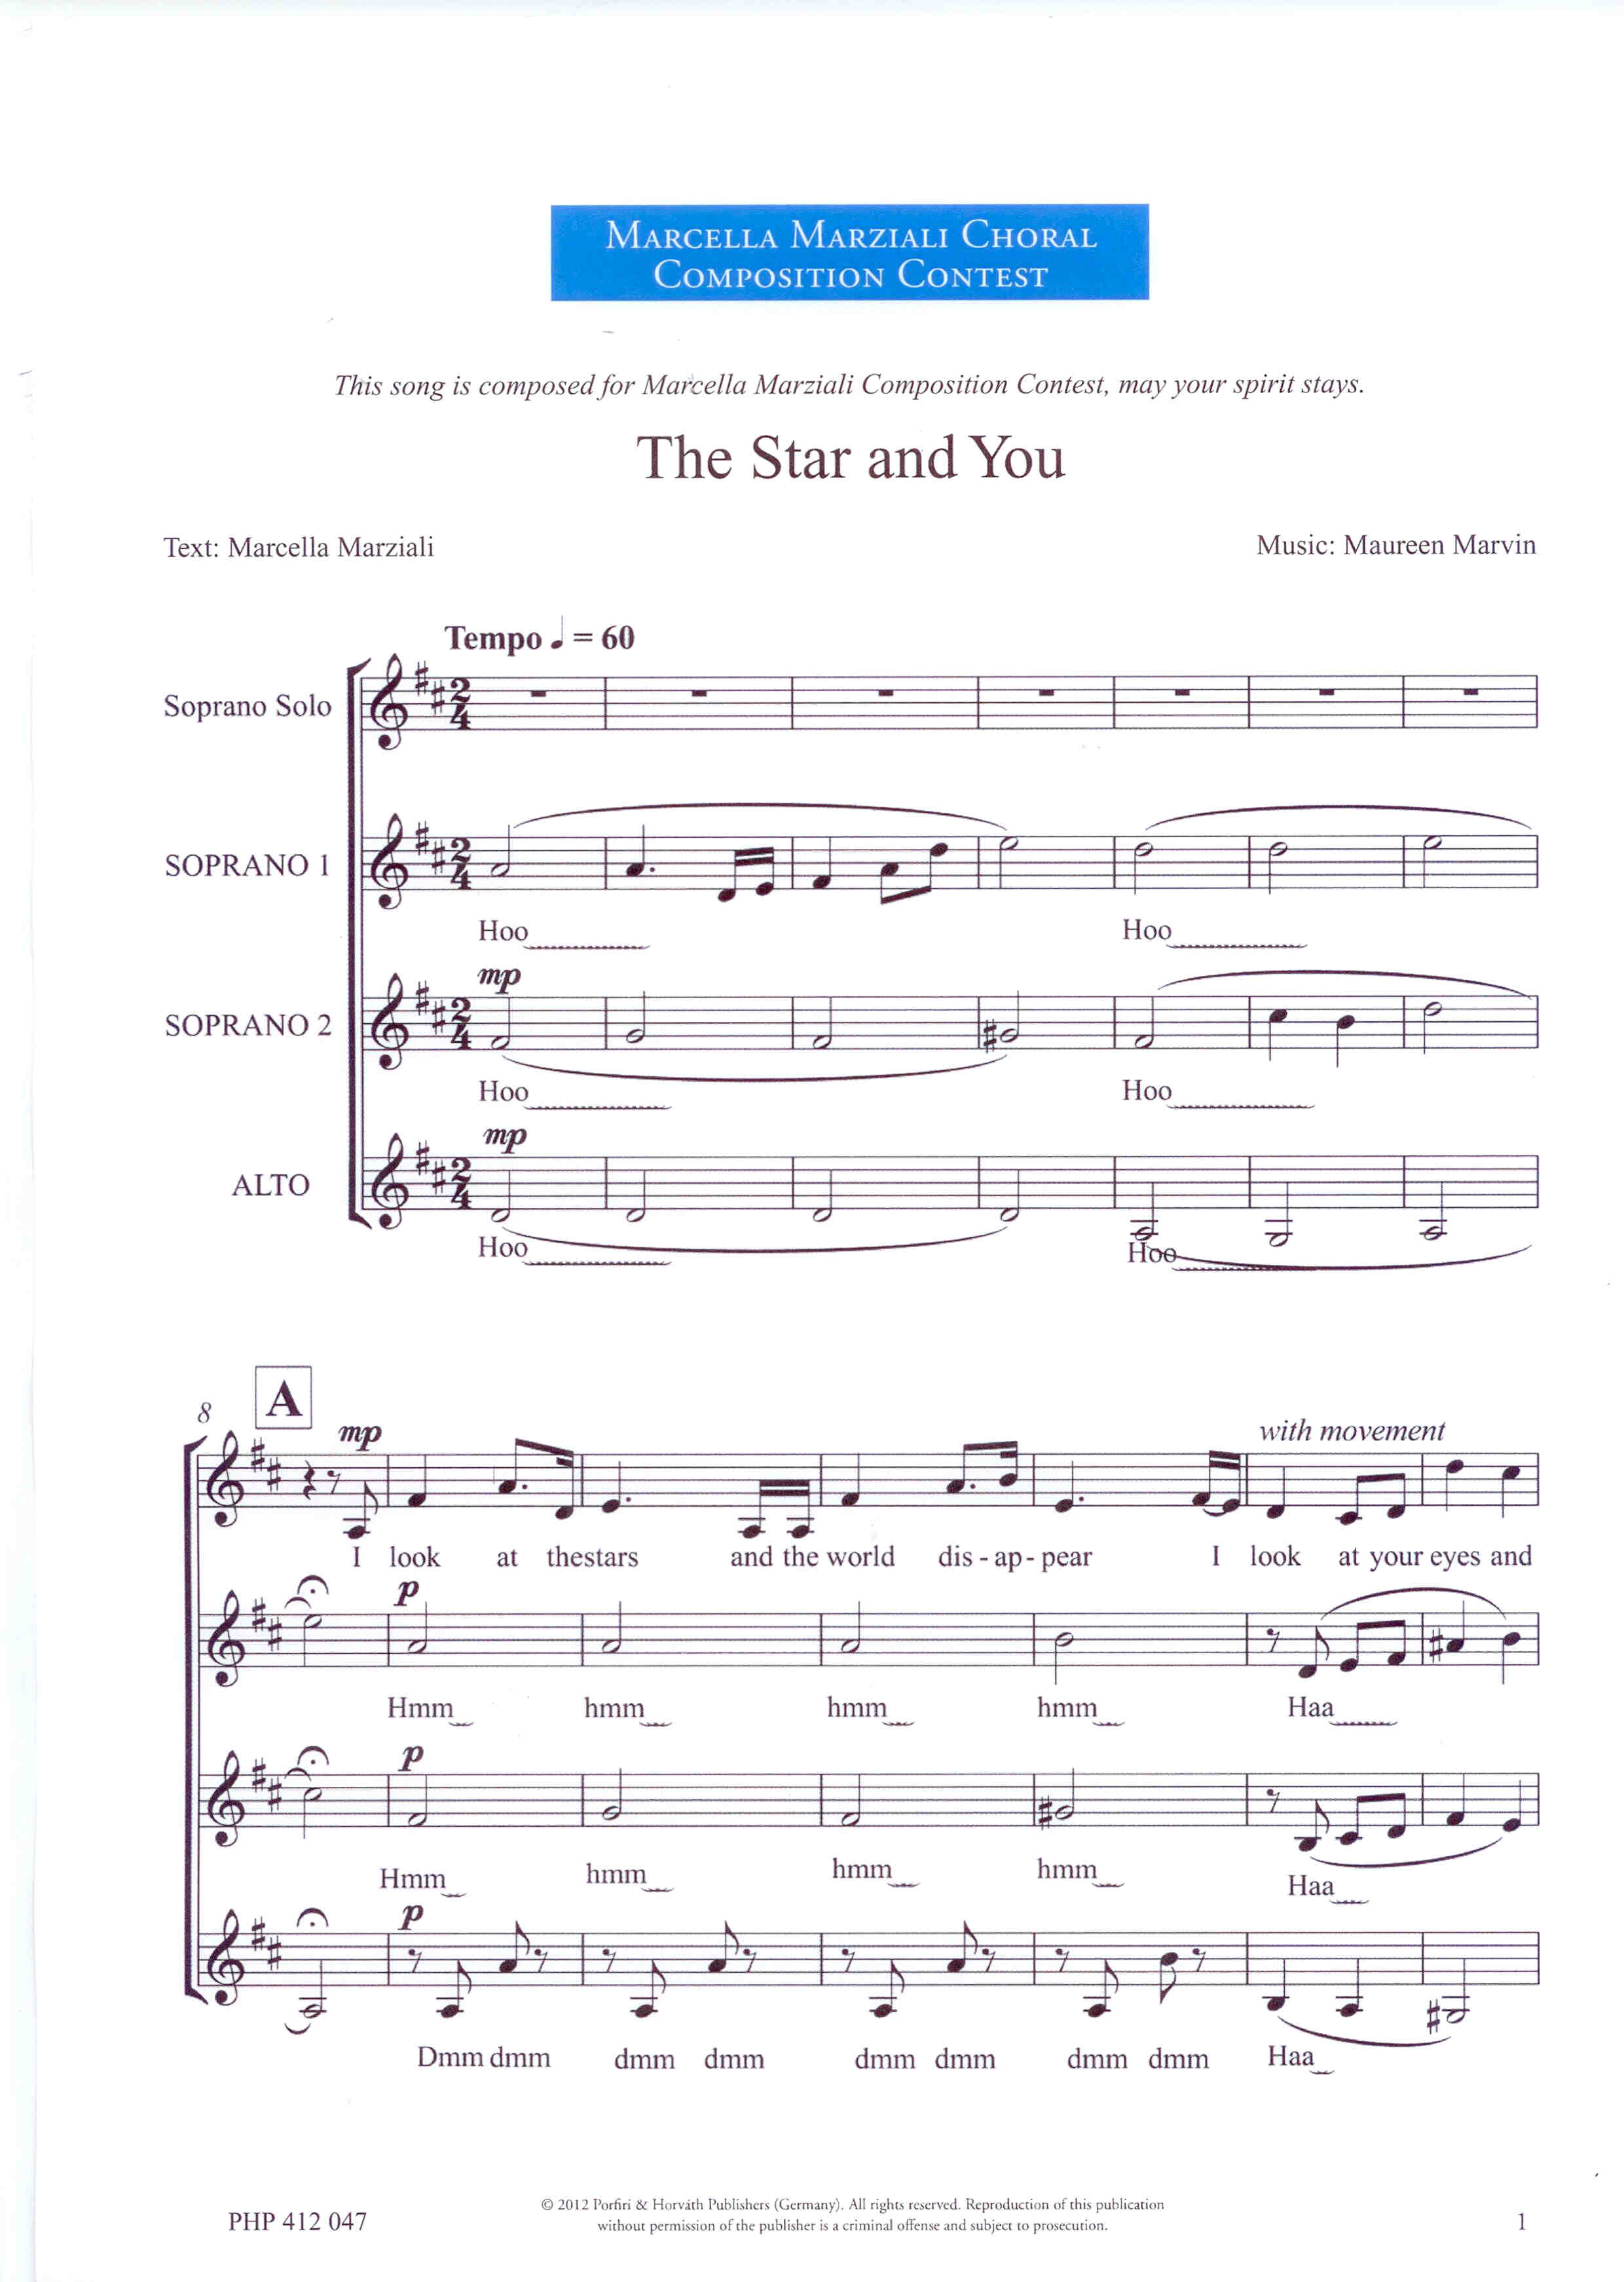 The Star and You - Show sample score